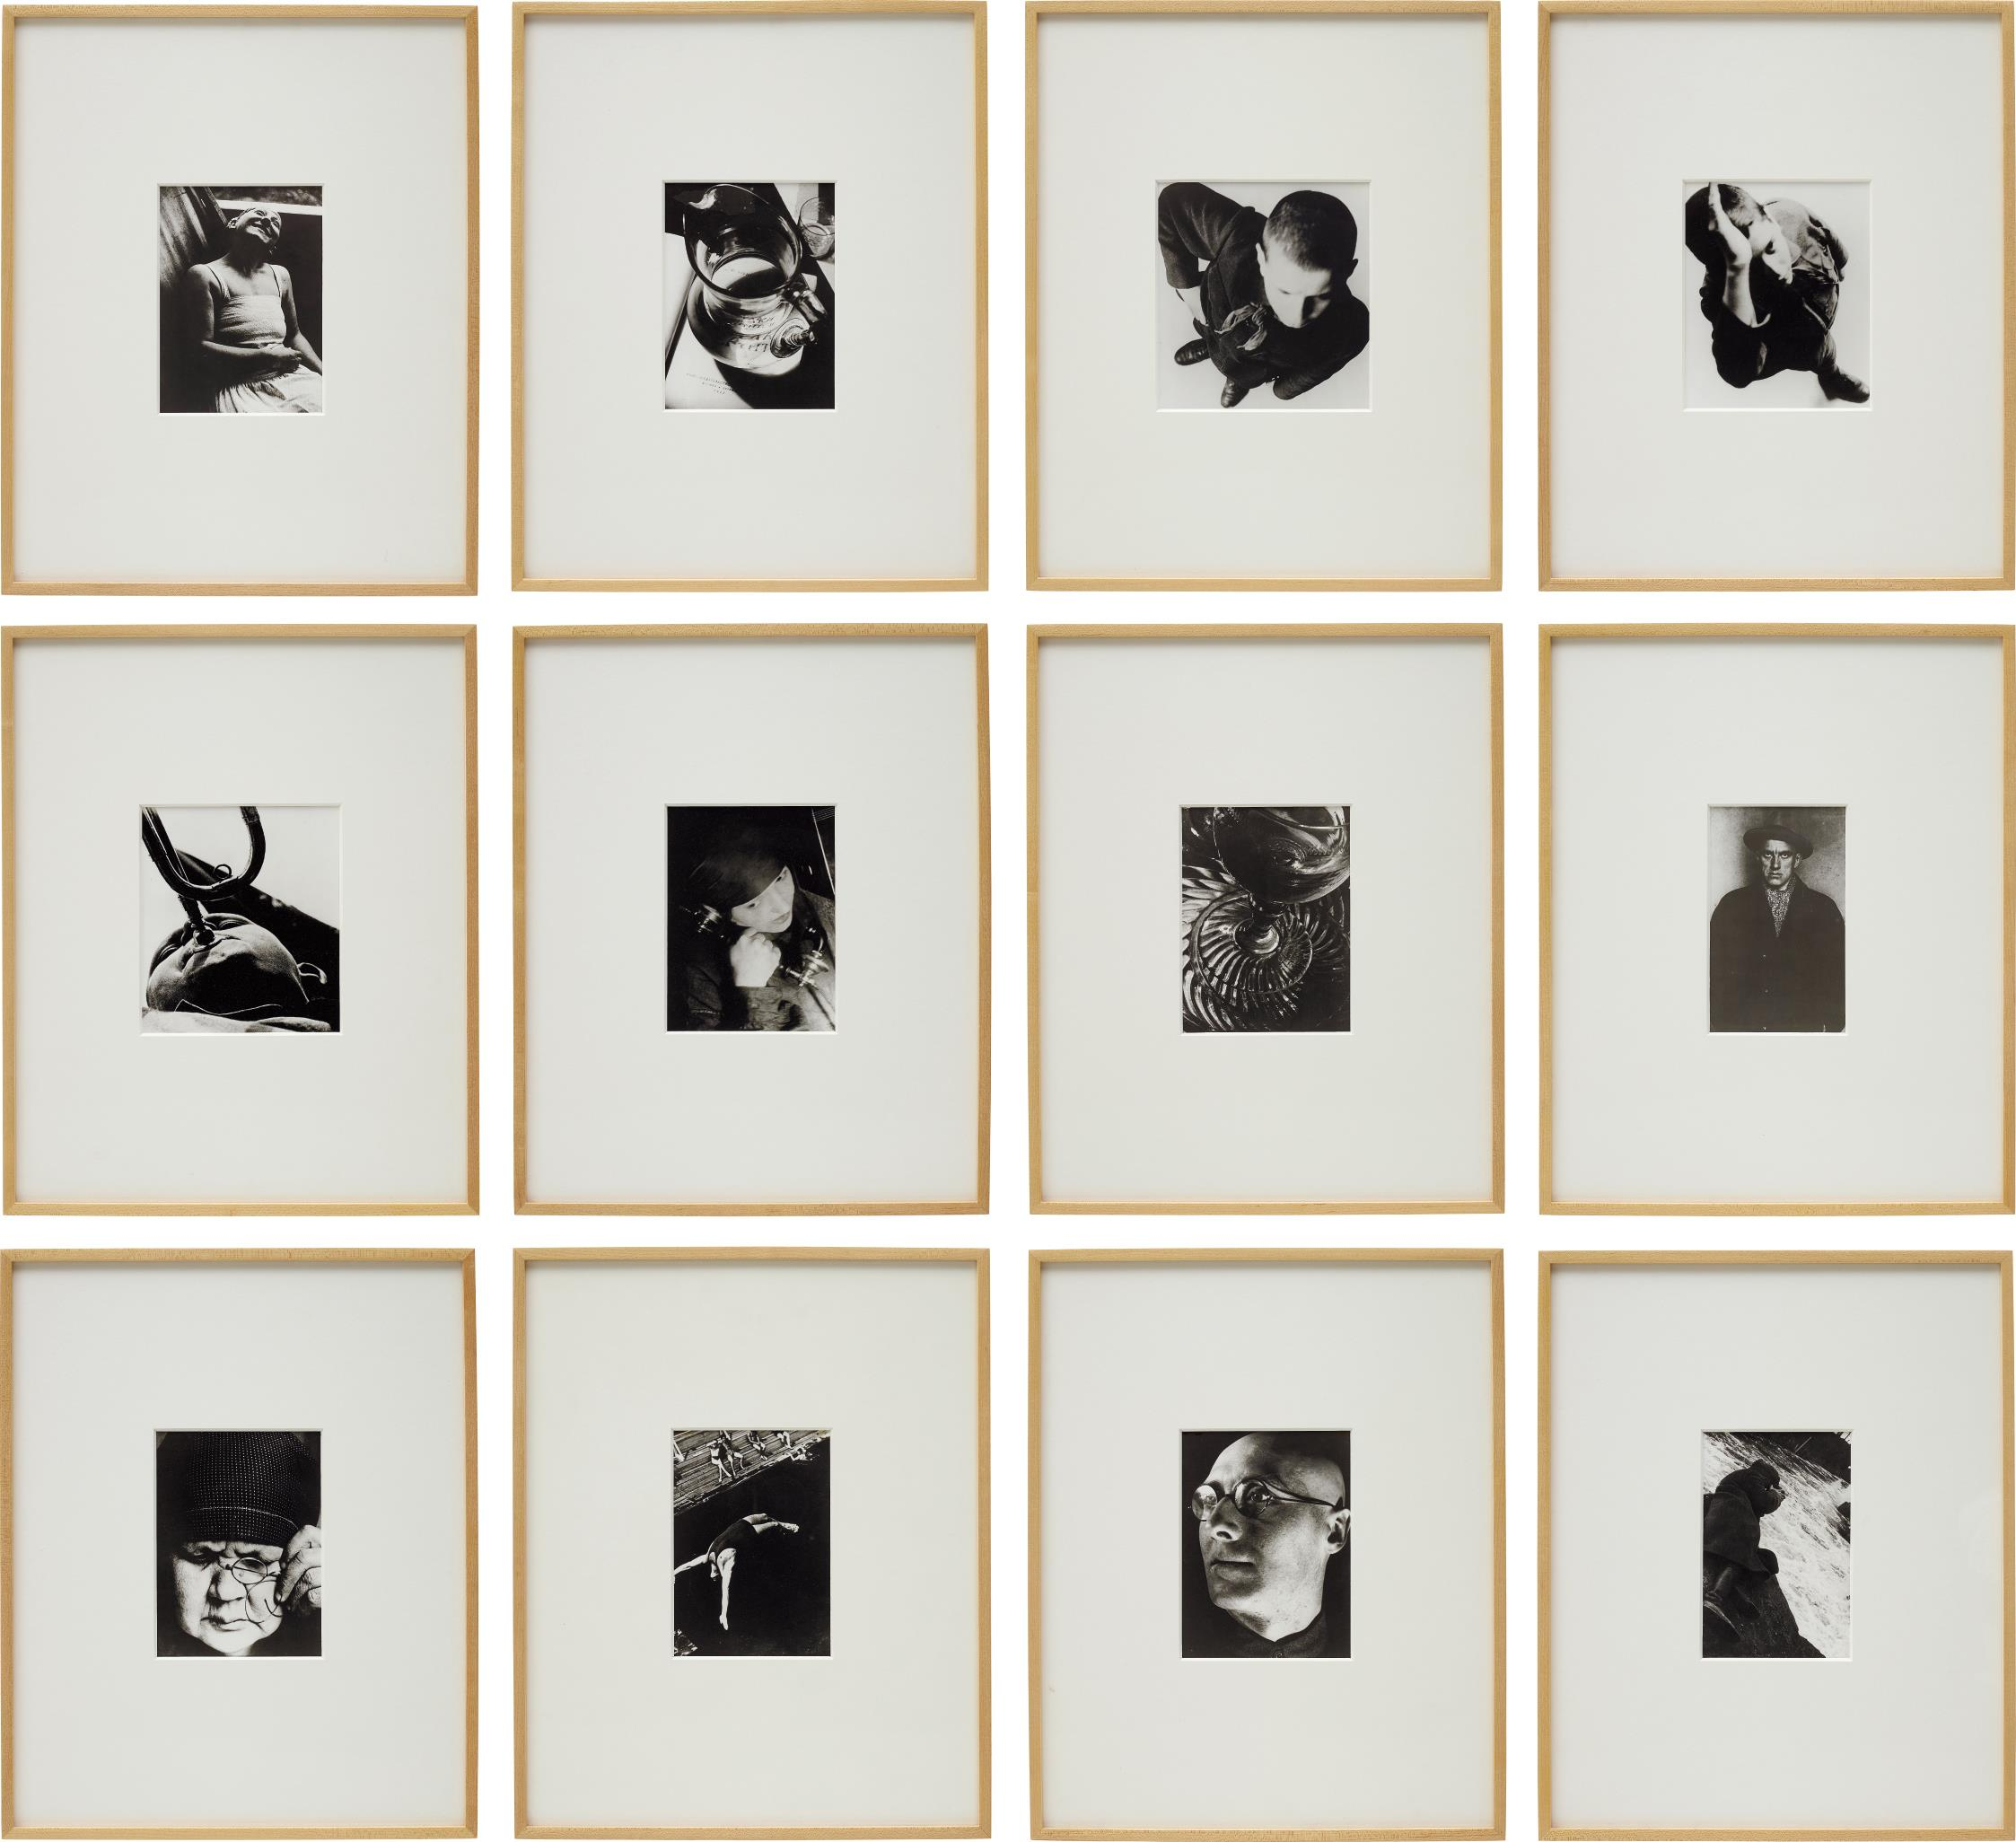 Sherrie Levine-After Rodchenko: 1-12-1987